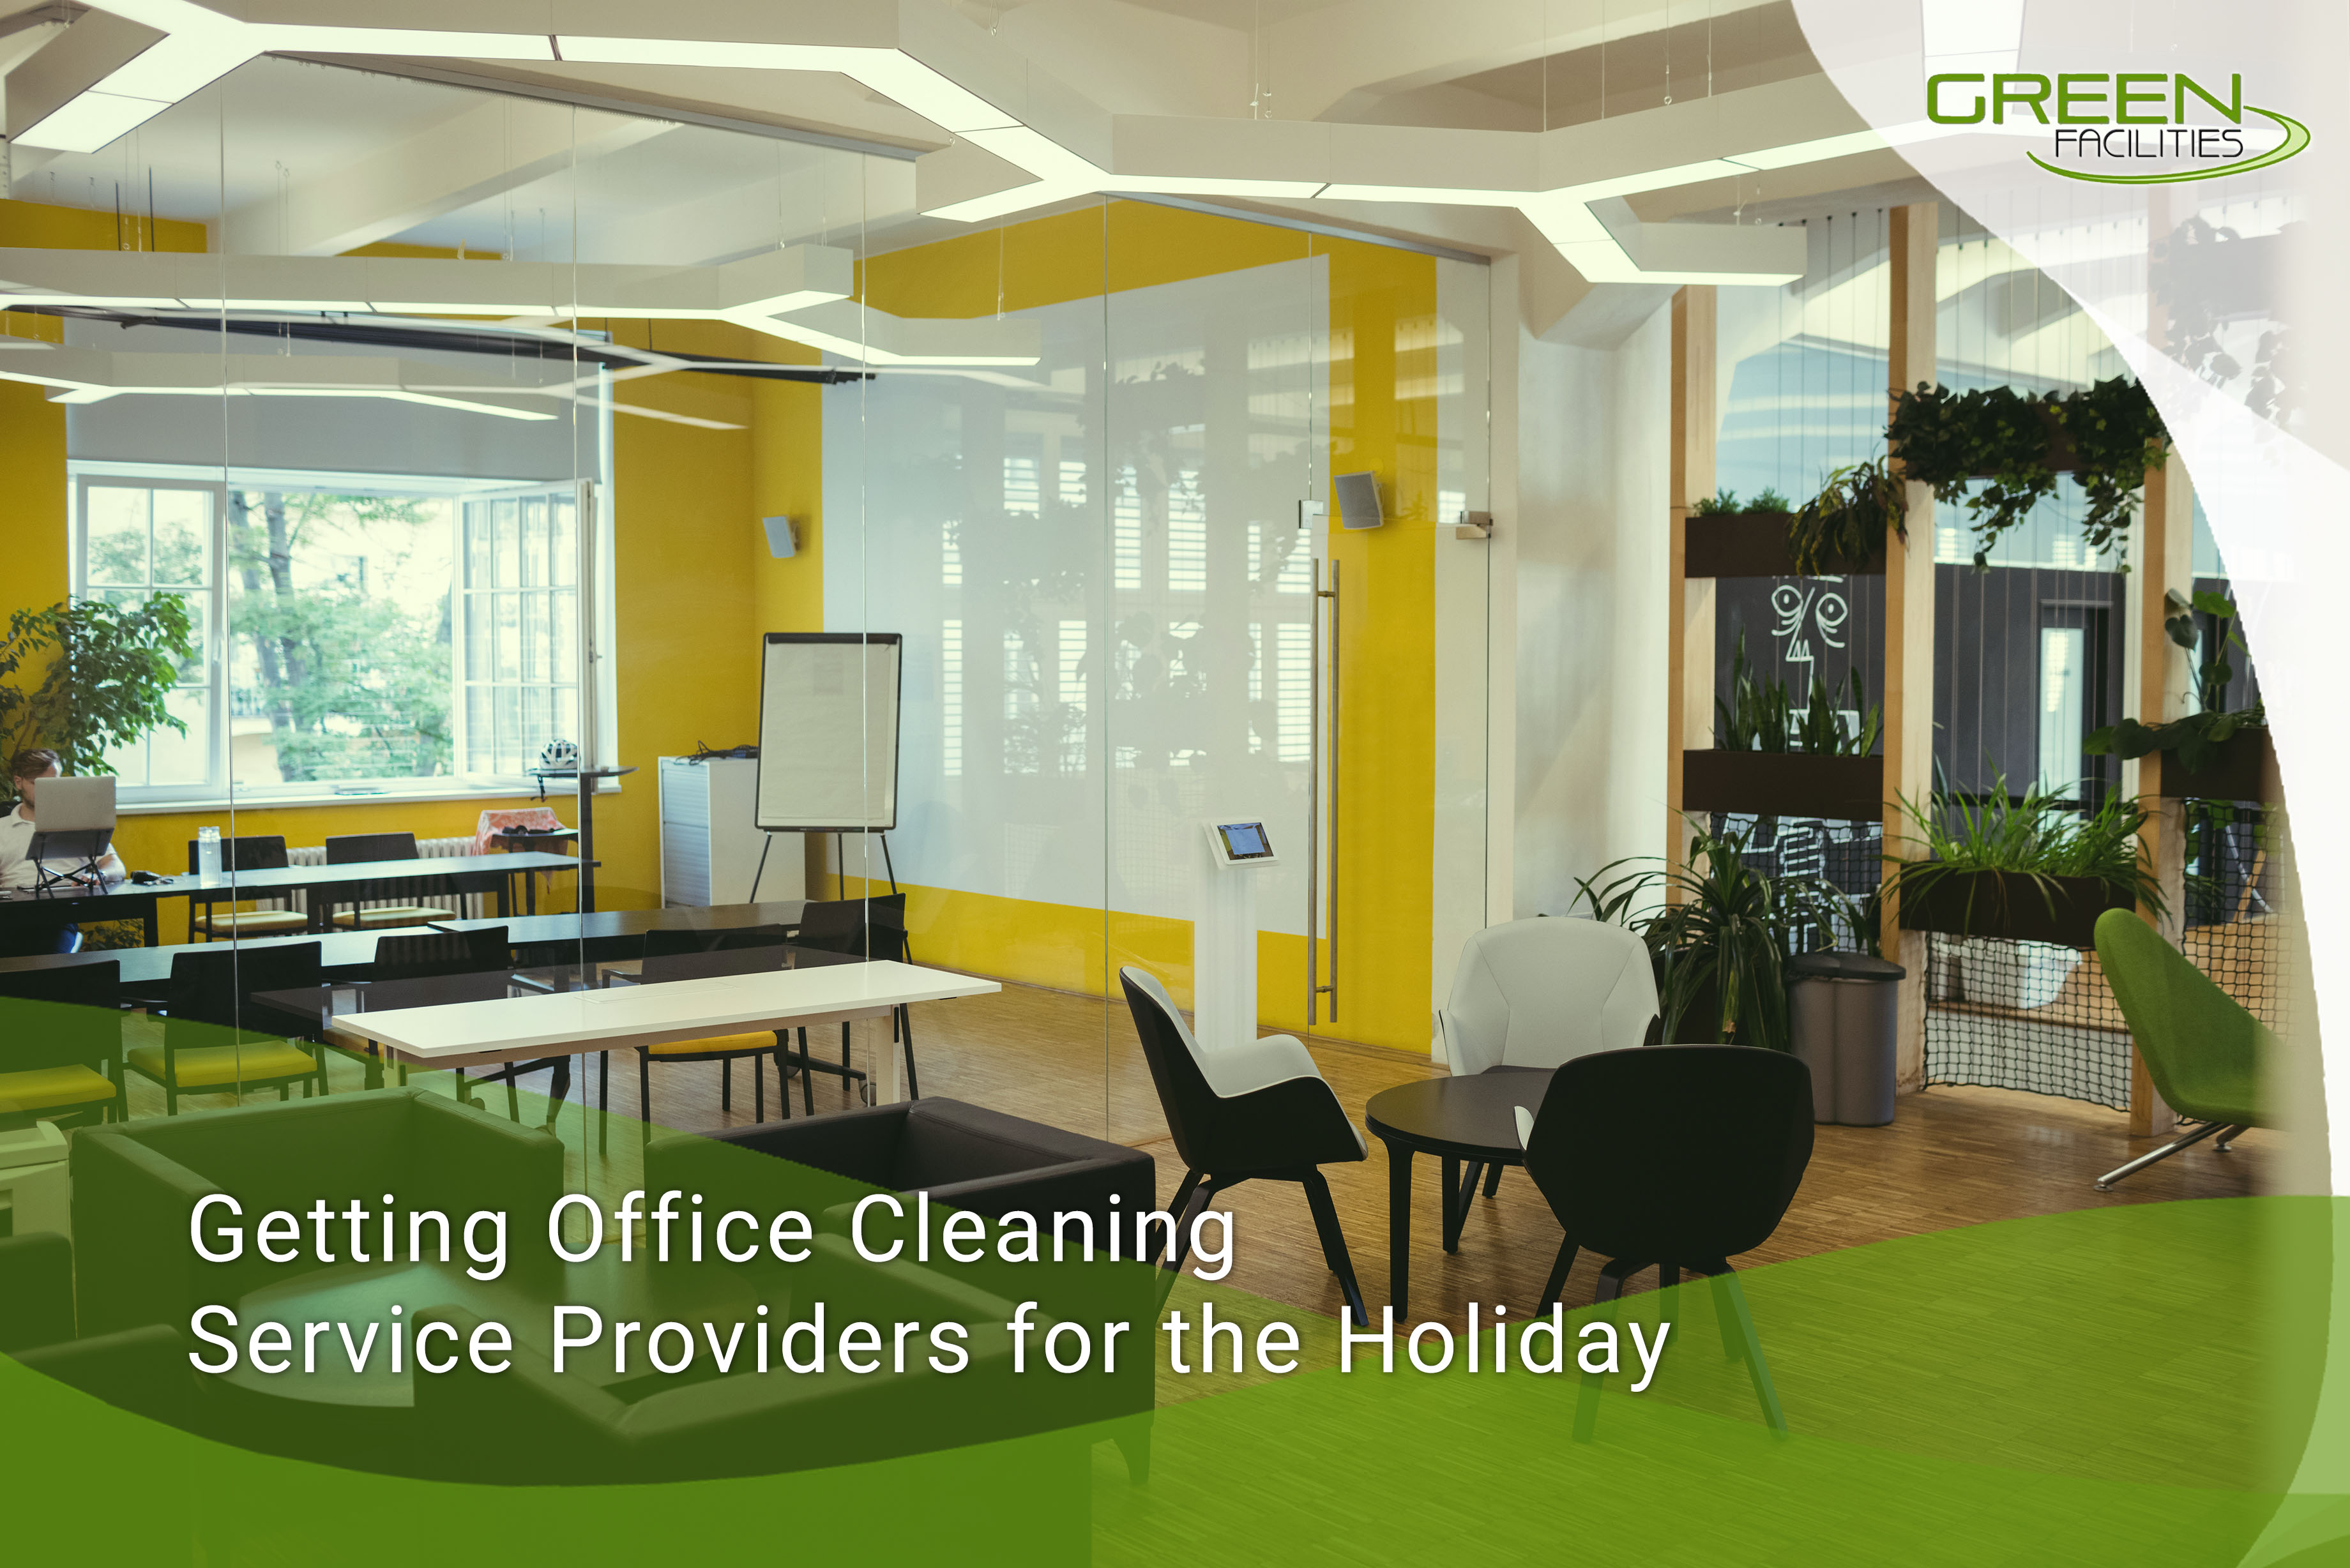 OBP01_Getting-Office-Cleaning-Service-Providers-for-the-Holiday